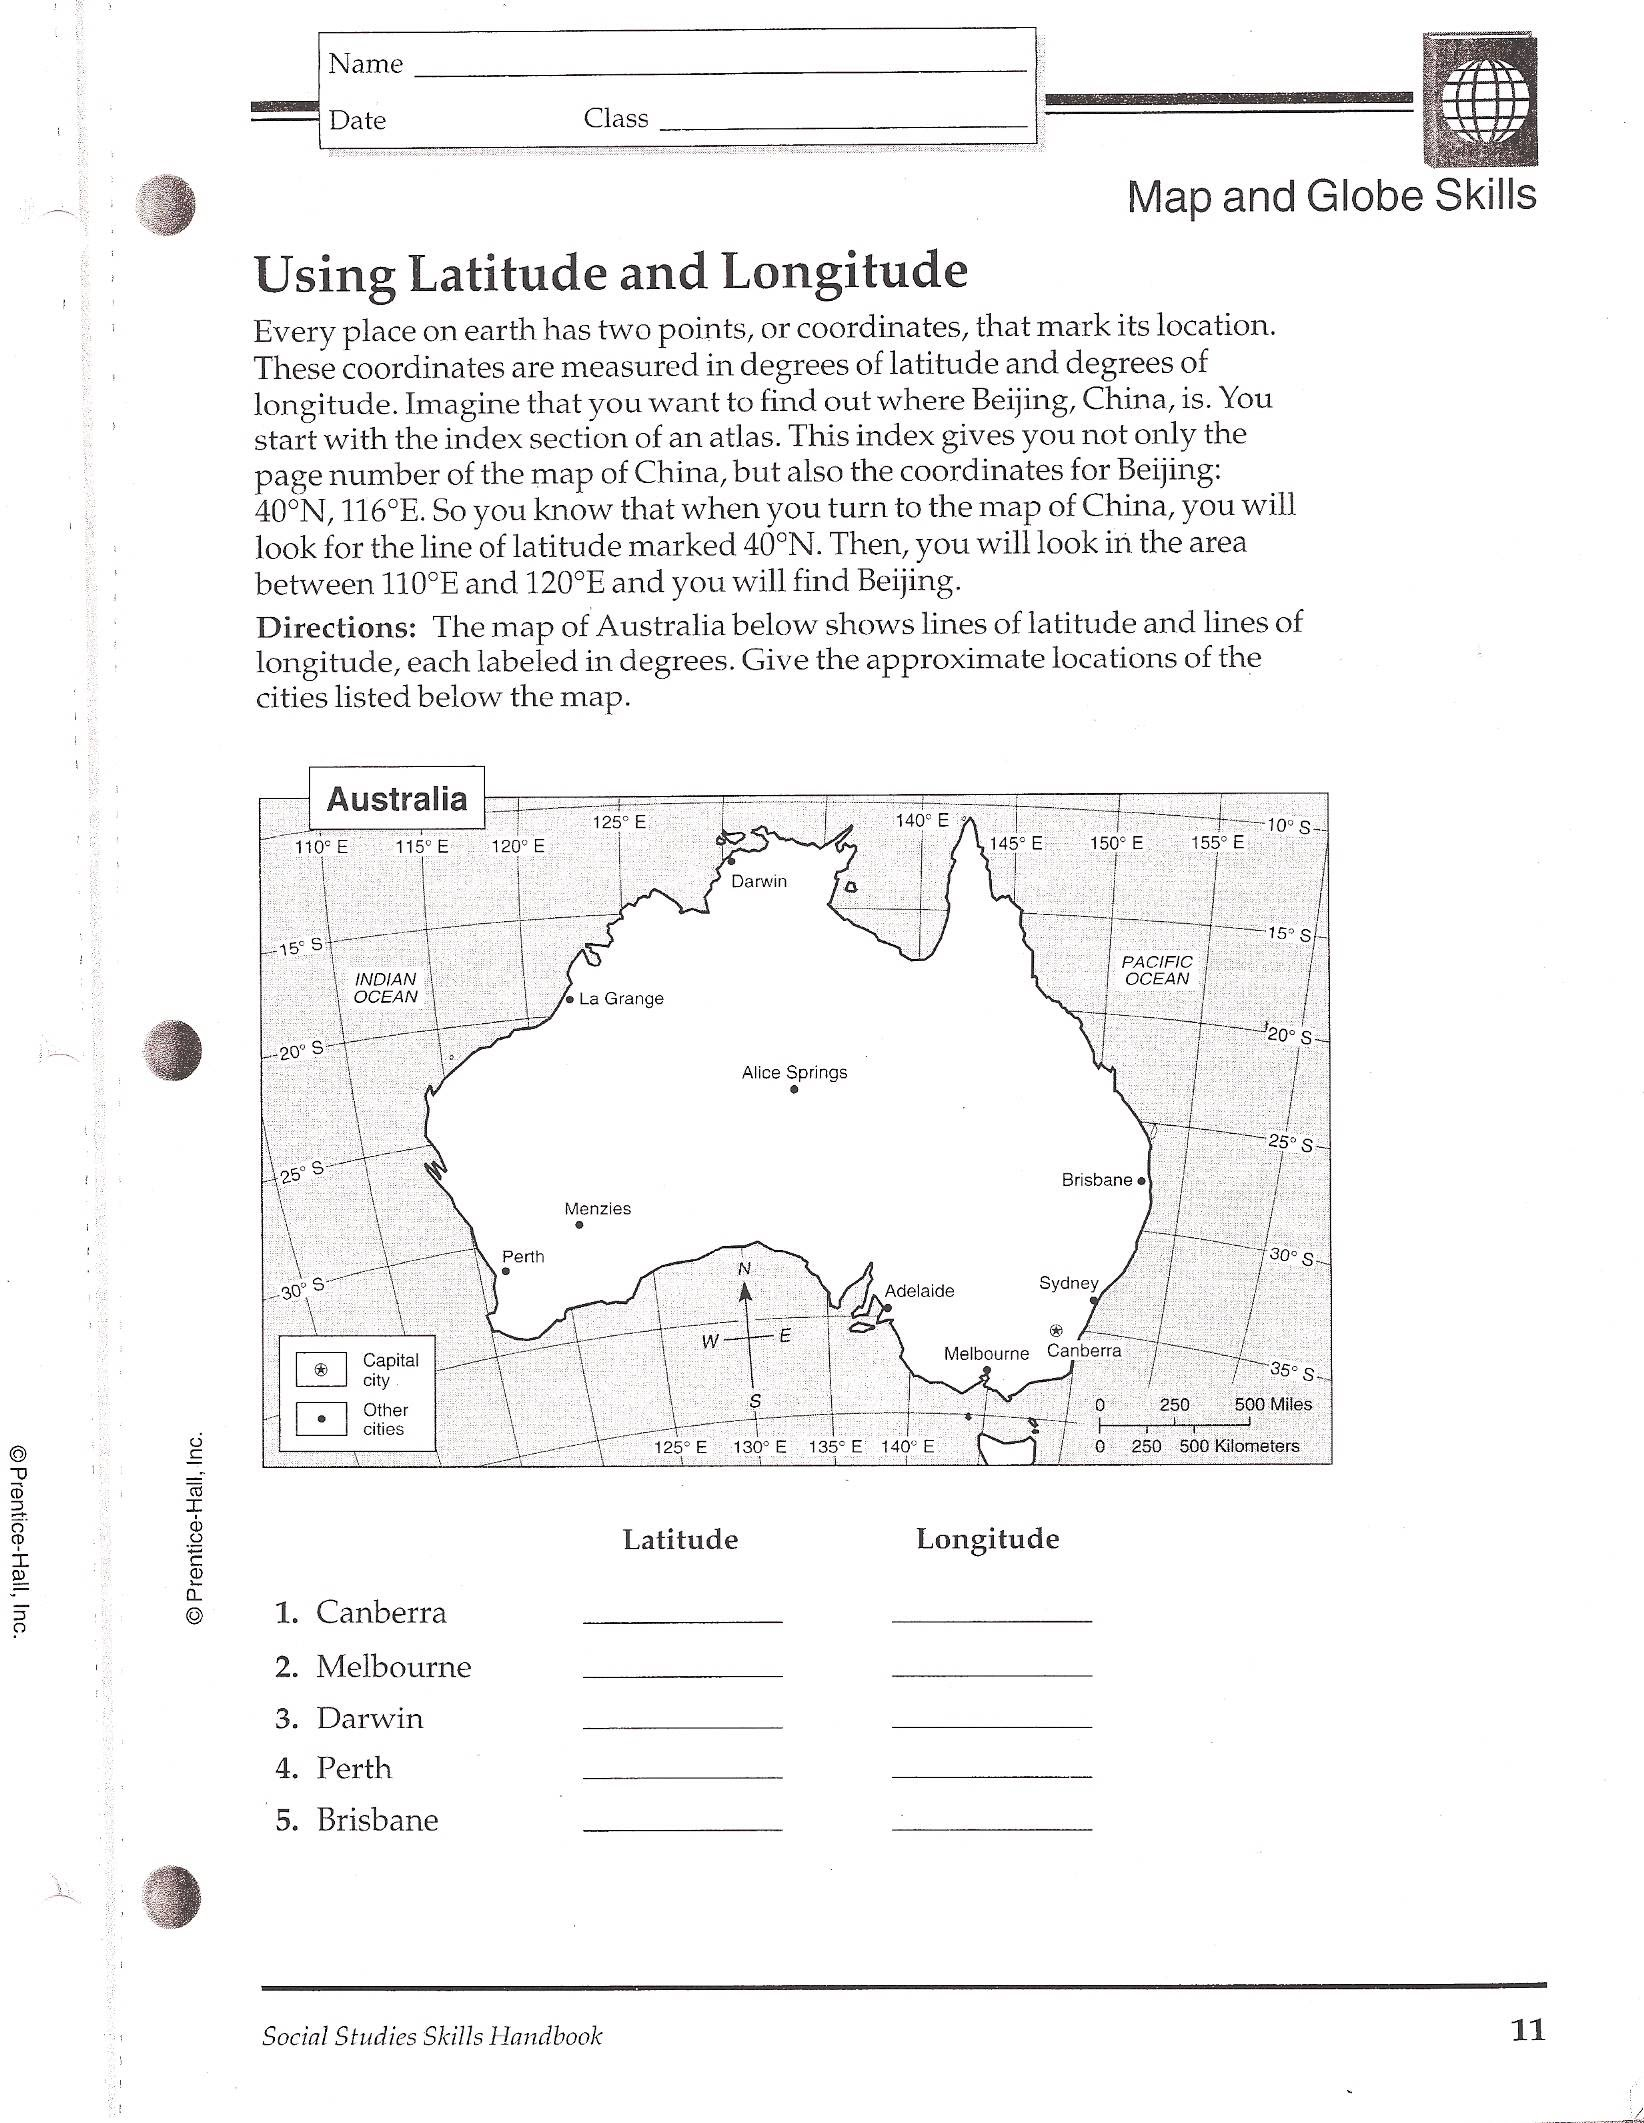 Free Worksheet Latitude And Longitude Worksheets Middle School worksheets on latitude and longitude rupsucks printables mrfordsclass longitudequiz jpg